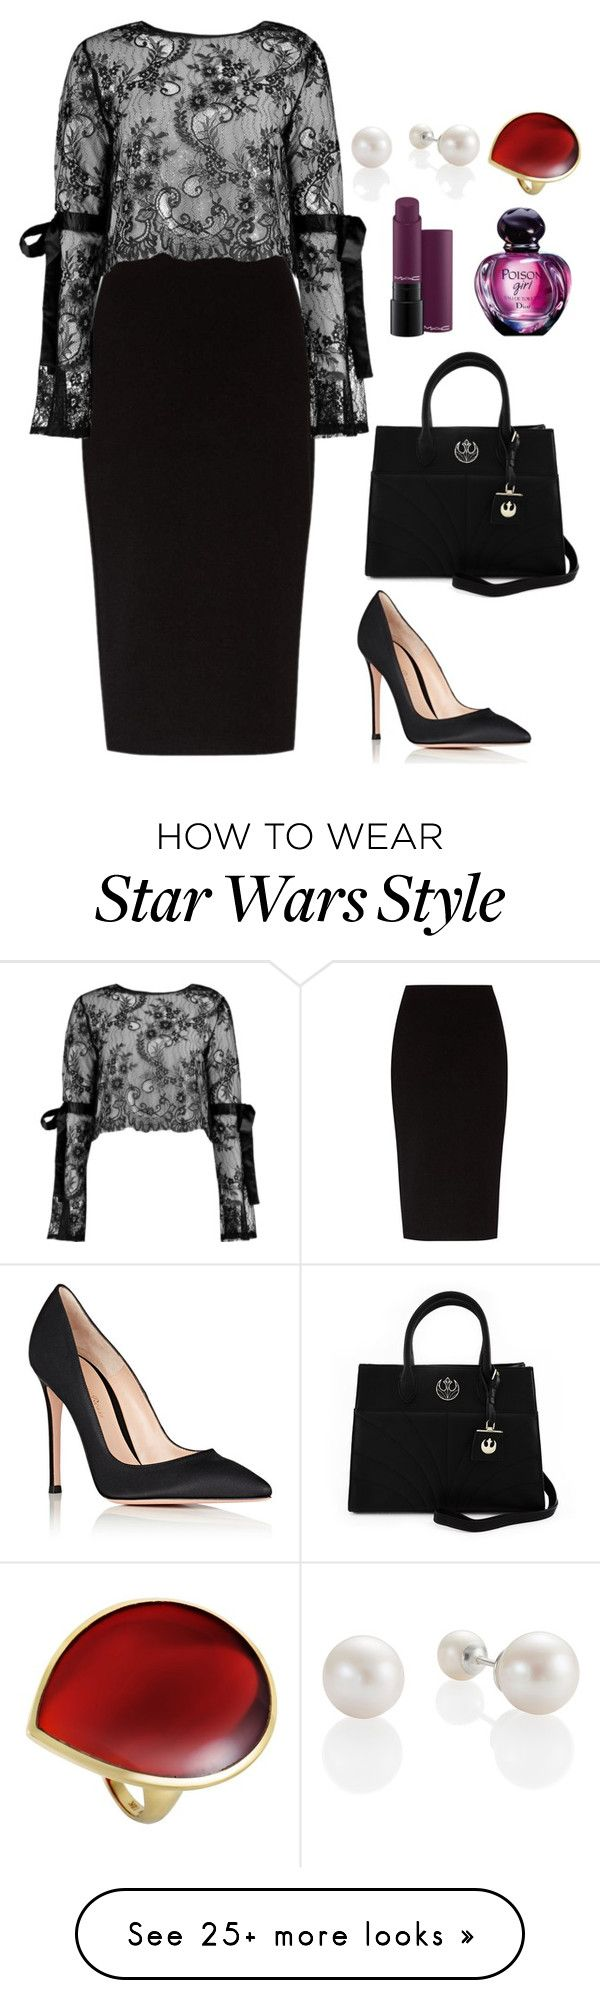 """fashion"" by ee3674889 on Polyvore featuring The Row, Boohoo, Loungefly, Gianvito Rossi, MAC Cosmetics, Christian Dior and Ippolita"